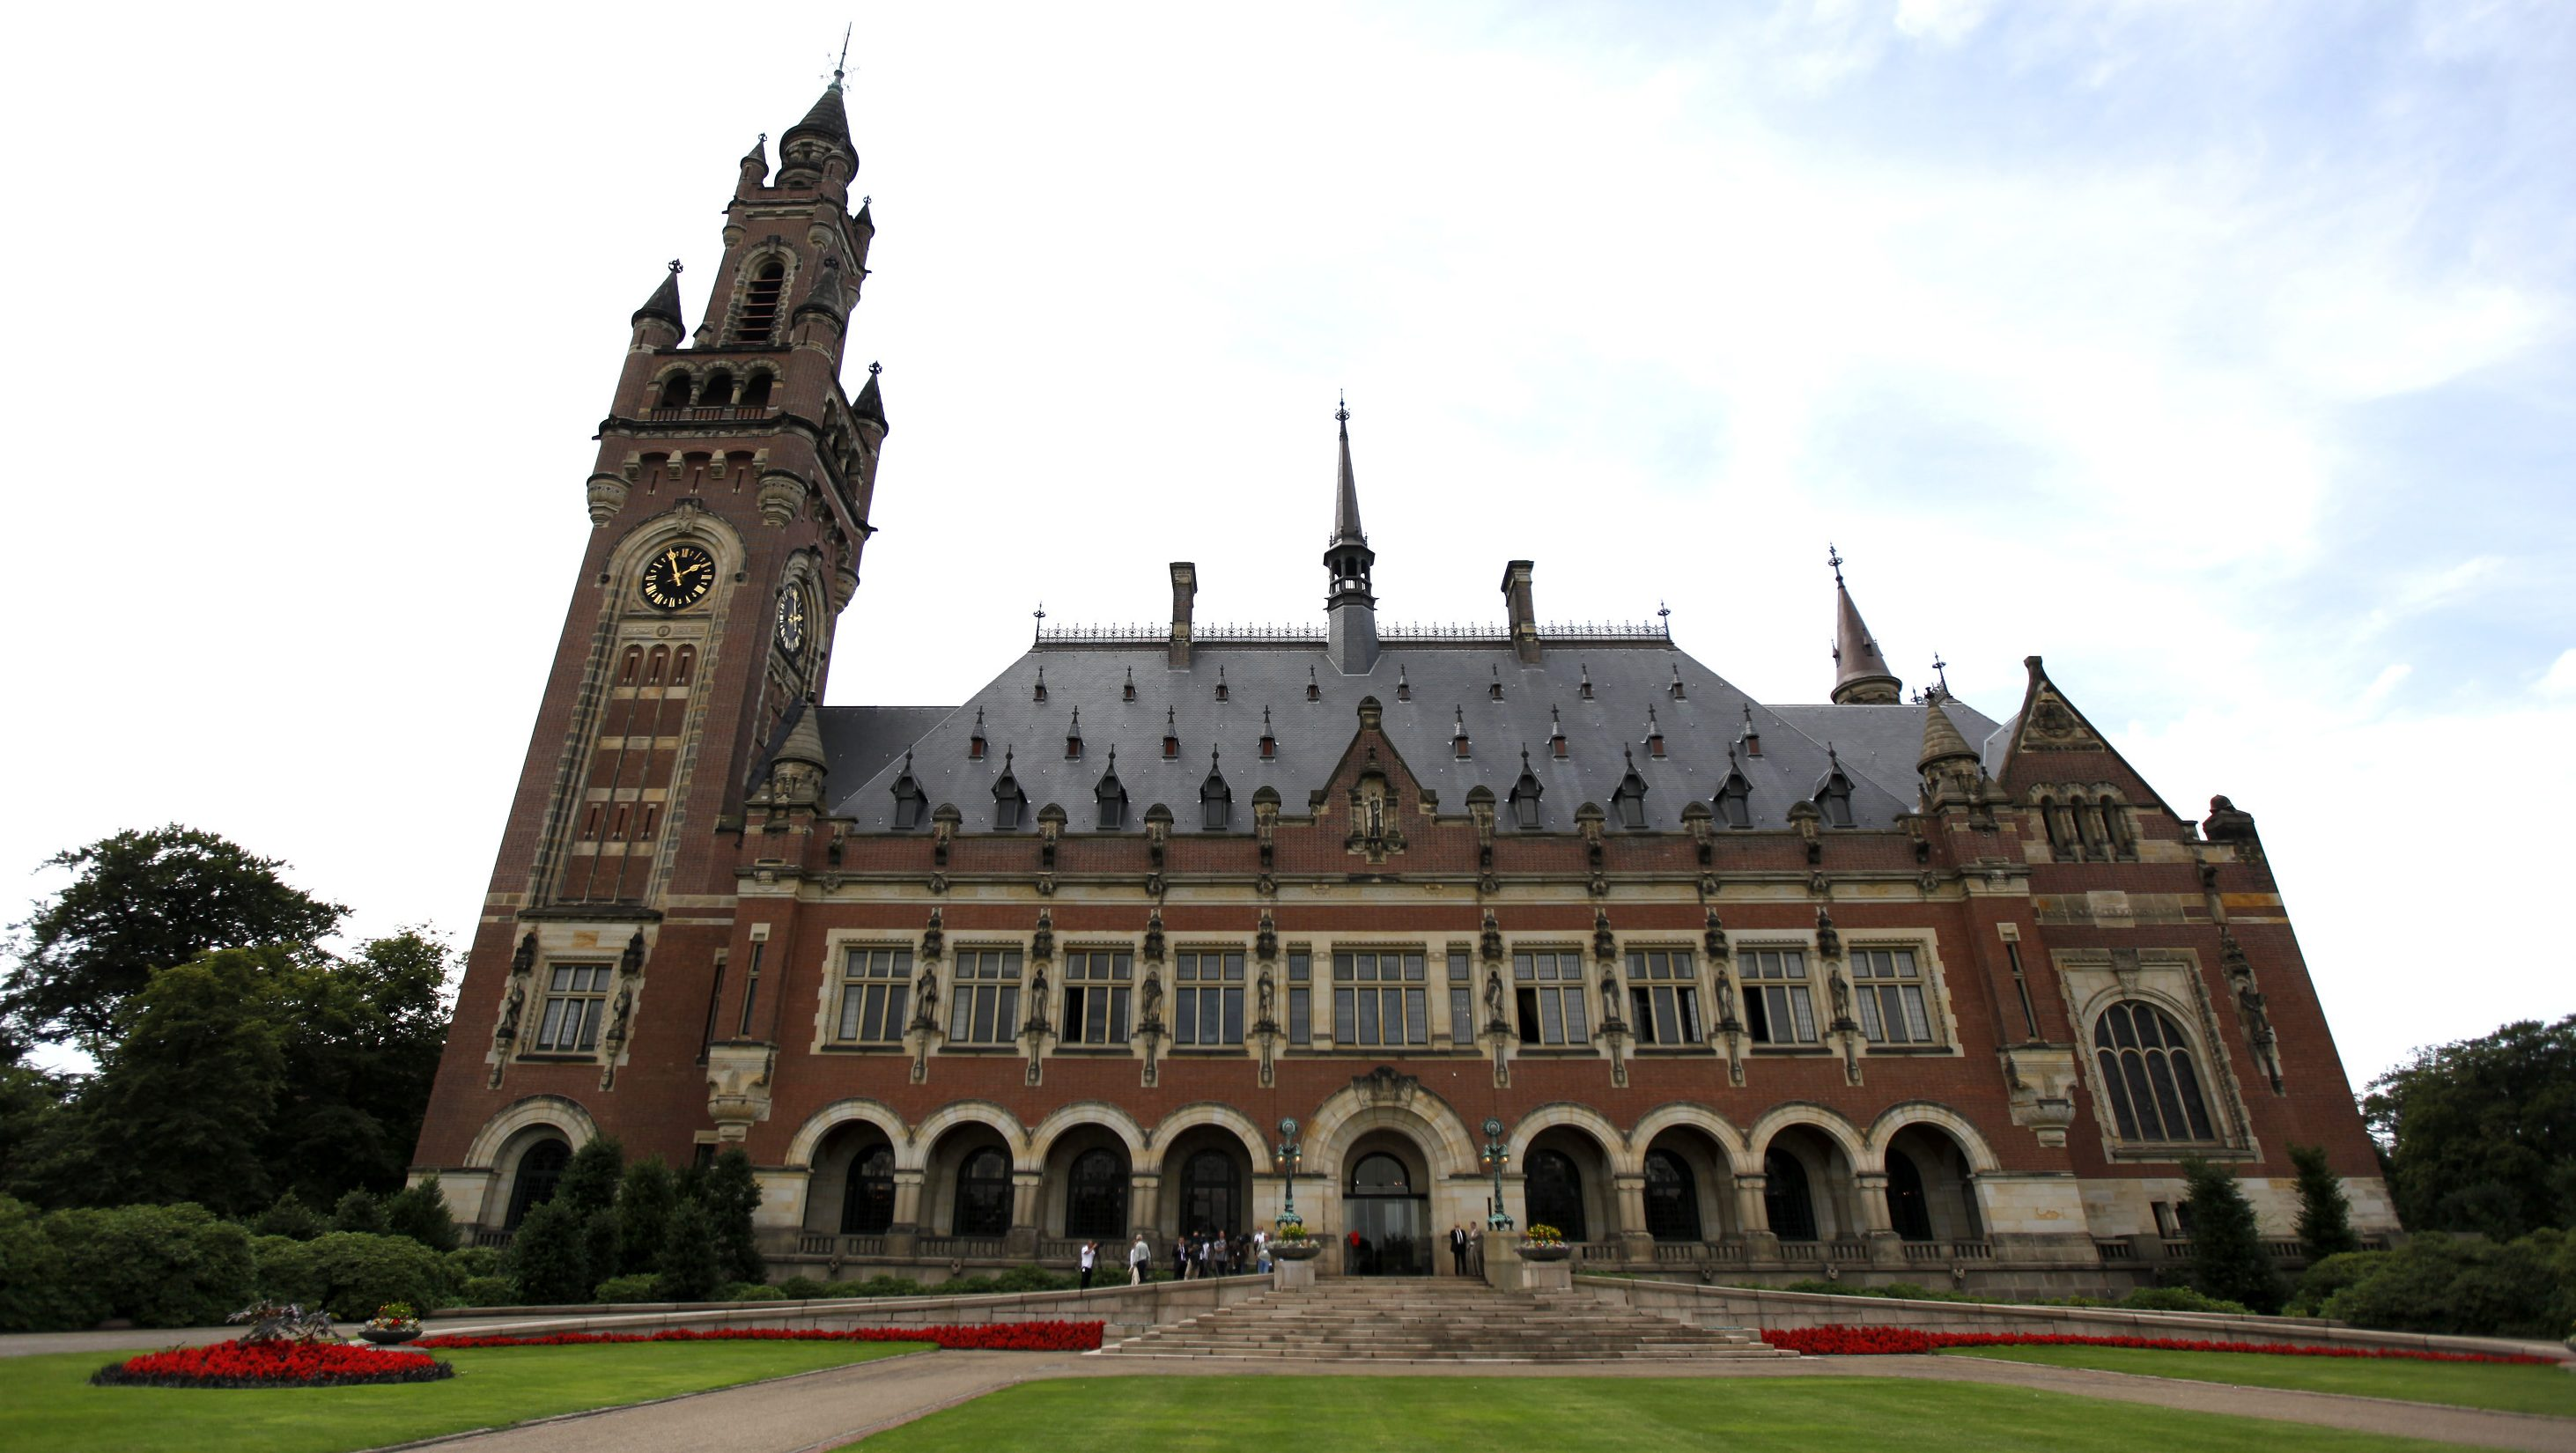 The Peace Palace, which houses The International Court of Justice, is seen before the World Court's ruling on Kosovo's unilateral secession from Serbia, in The Hague